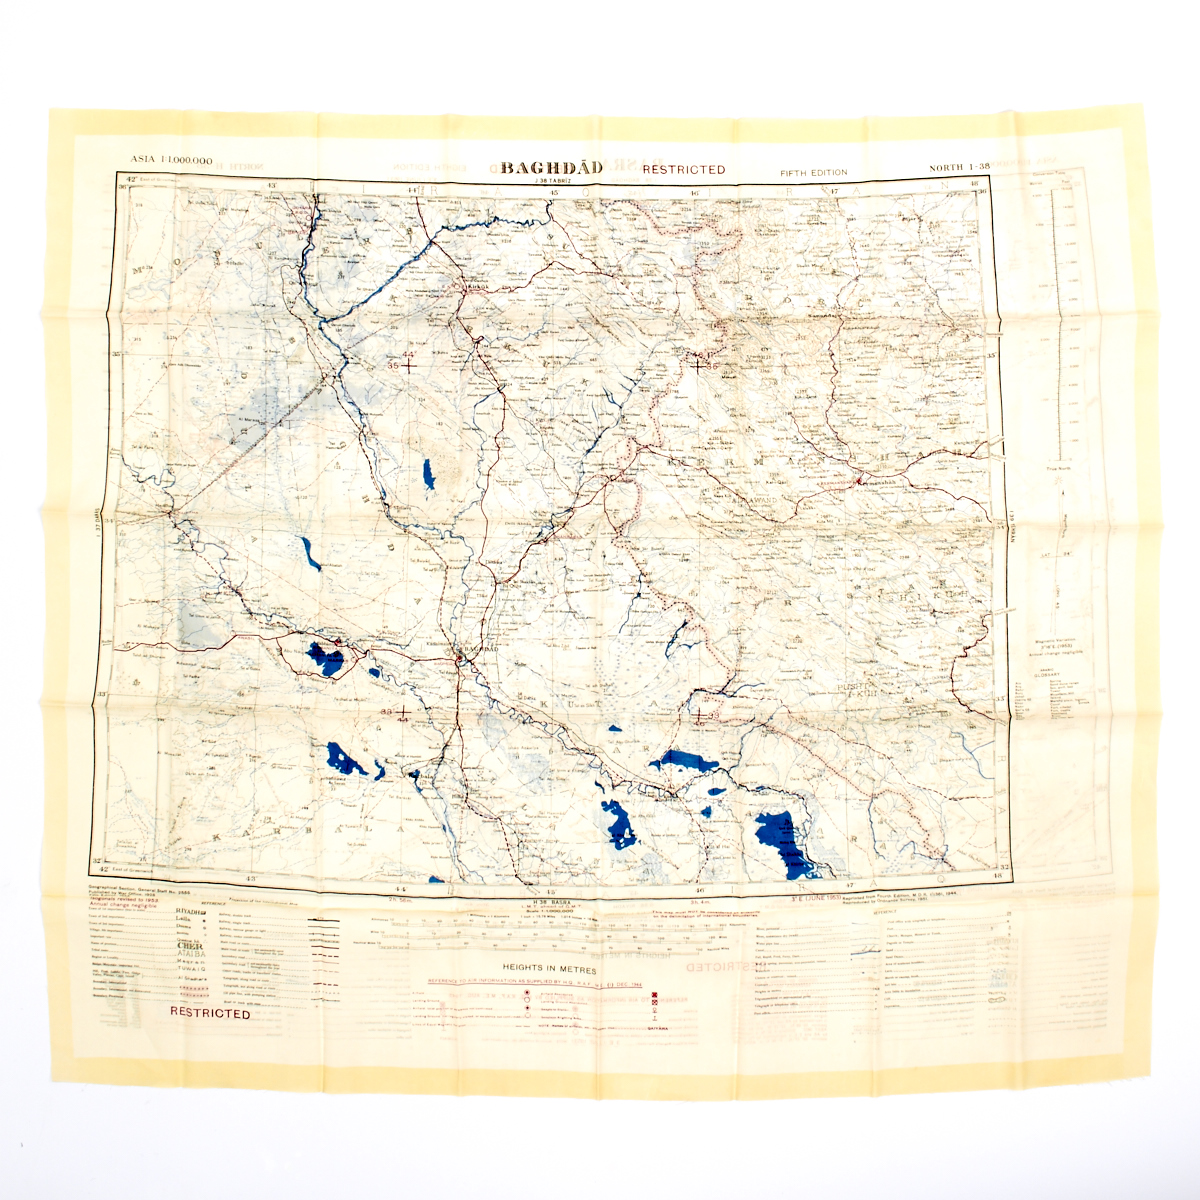 british gulf war fabric map of baghdad basra